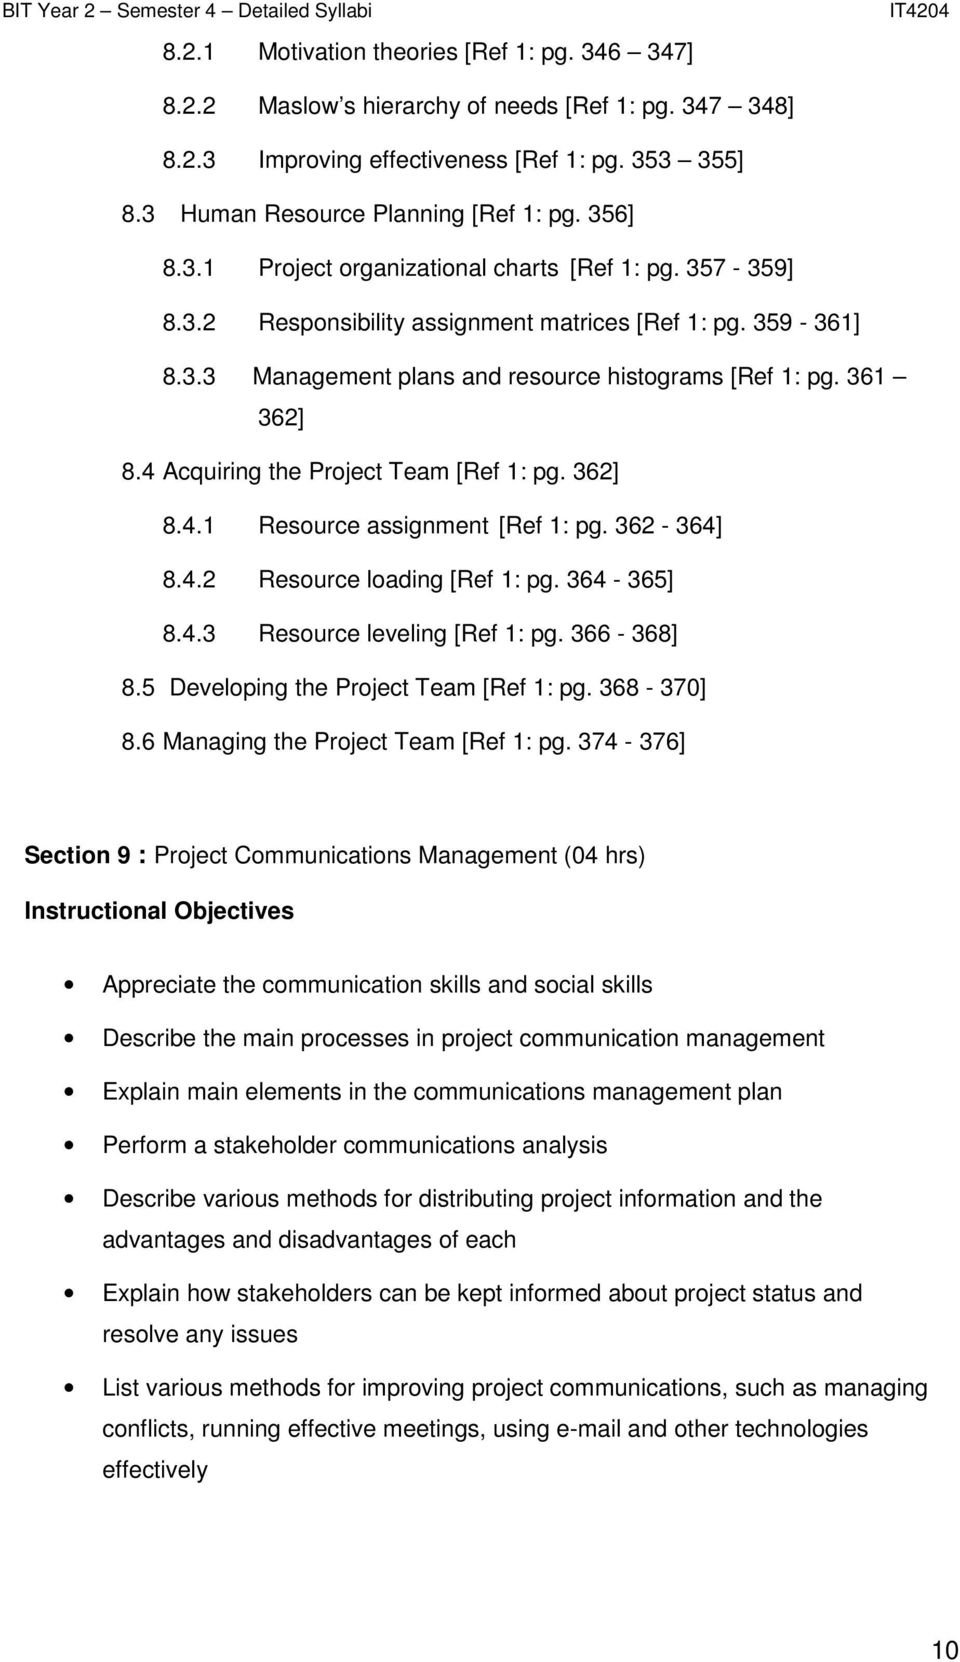 4 Acquiring the Project Team [Ref 1: pg. 362] 8.4.1 Resource assignment [Ref 1: pg. 362-364] 8.4.2 Resource loading [Ref 1: pg. 364-365] 8.4.3 Resource leveling [Ref 1: pg. 366-368] 8.